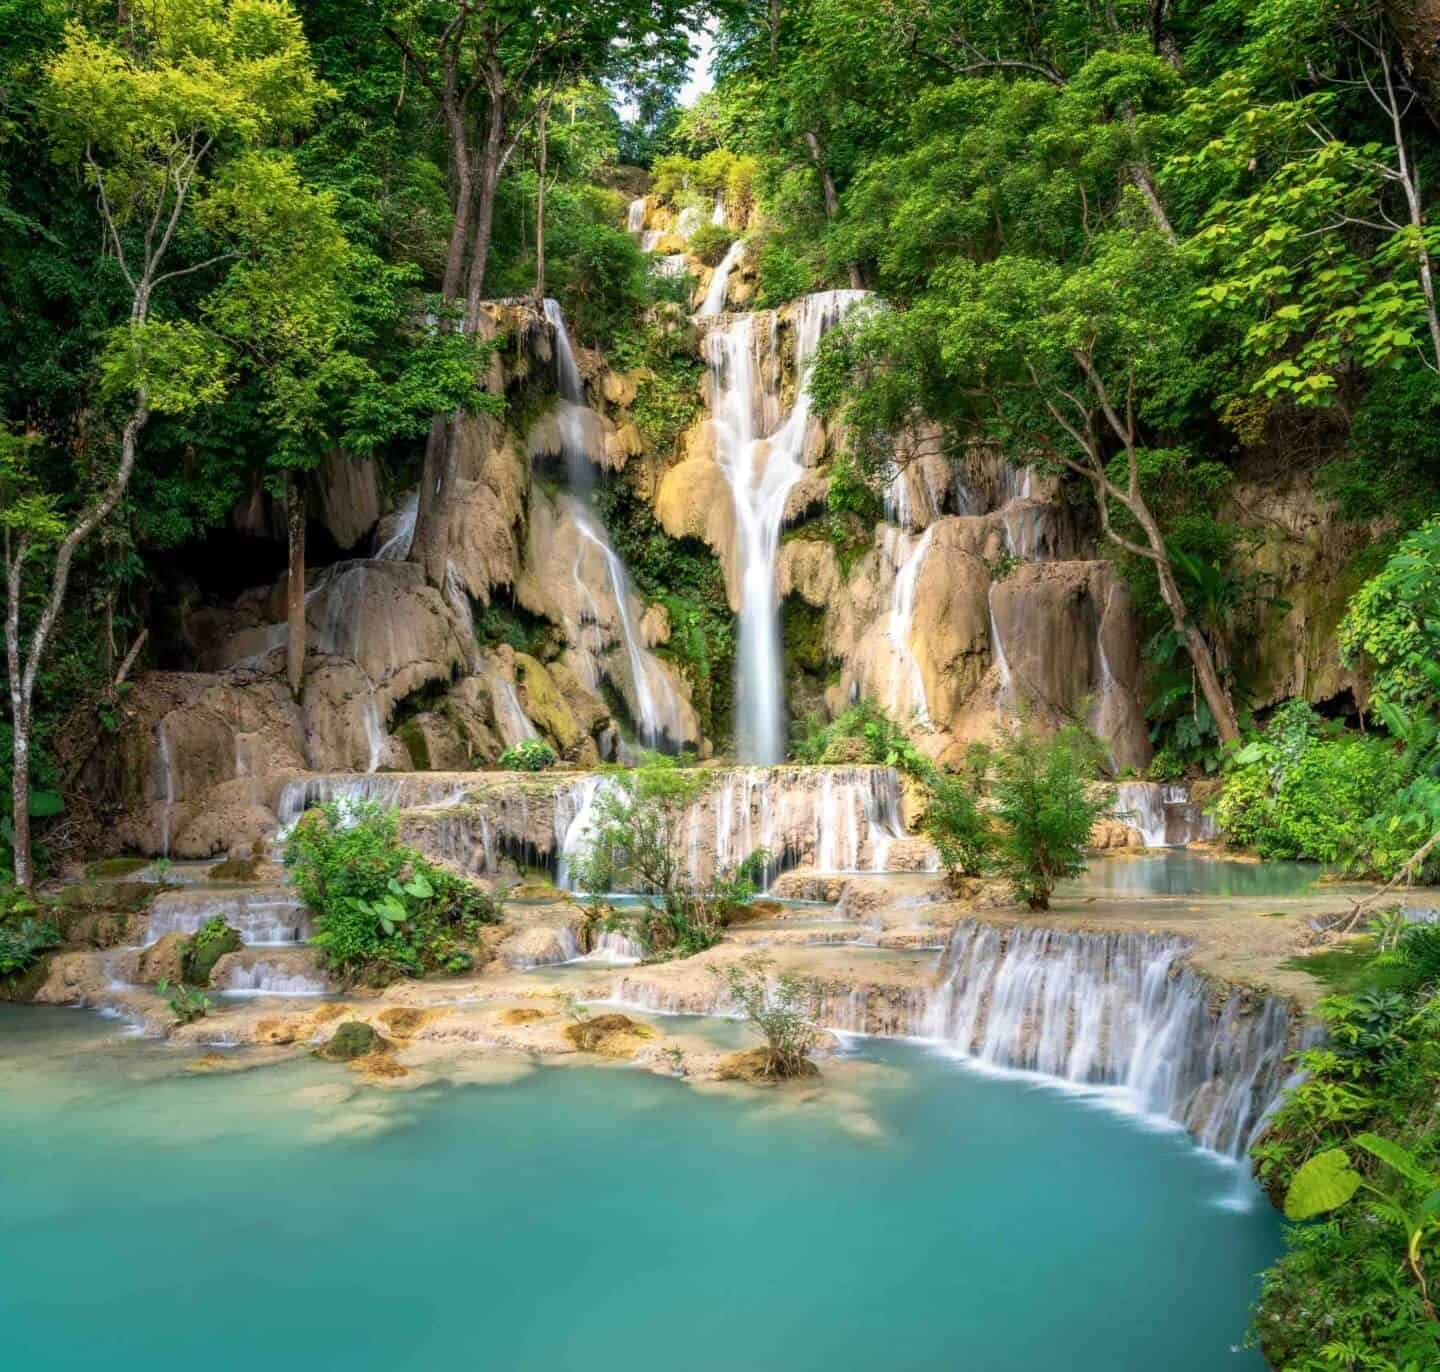 My absolute favorite waterfall in the world; the Kuang Si Waterfall is a genuine miracle of nature!